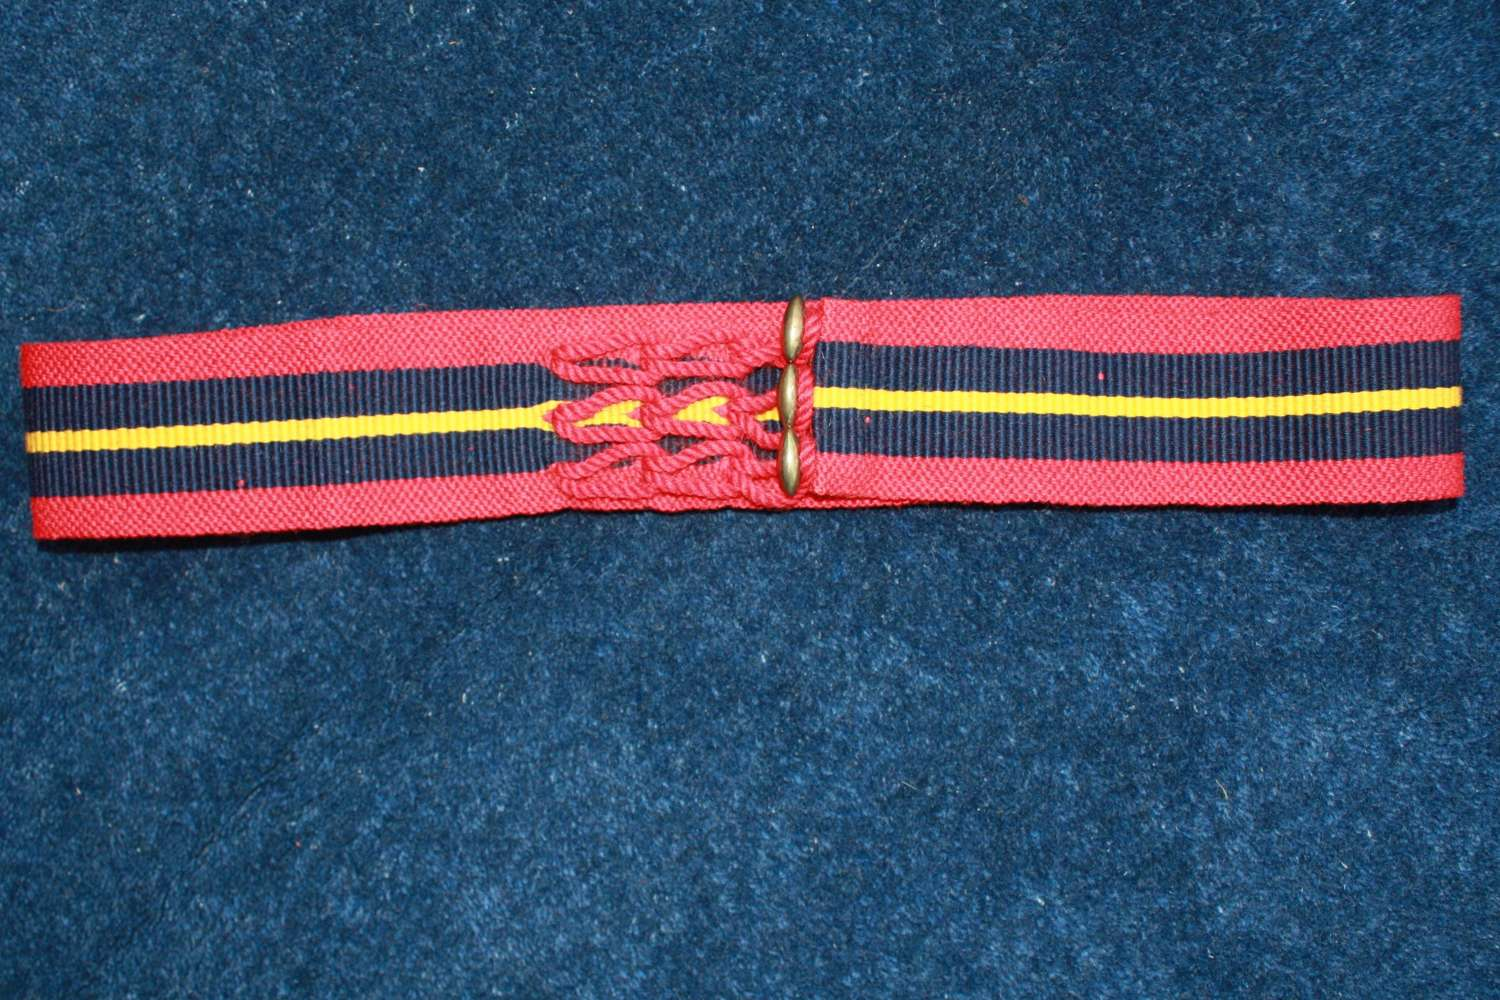 WW1 British Army 1914 dated Gunners 'Stable Belt'.